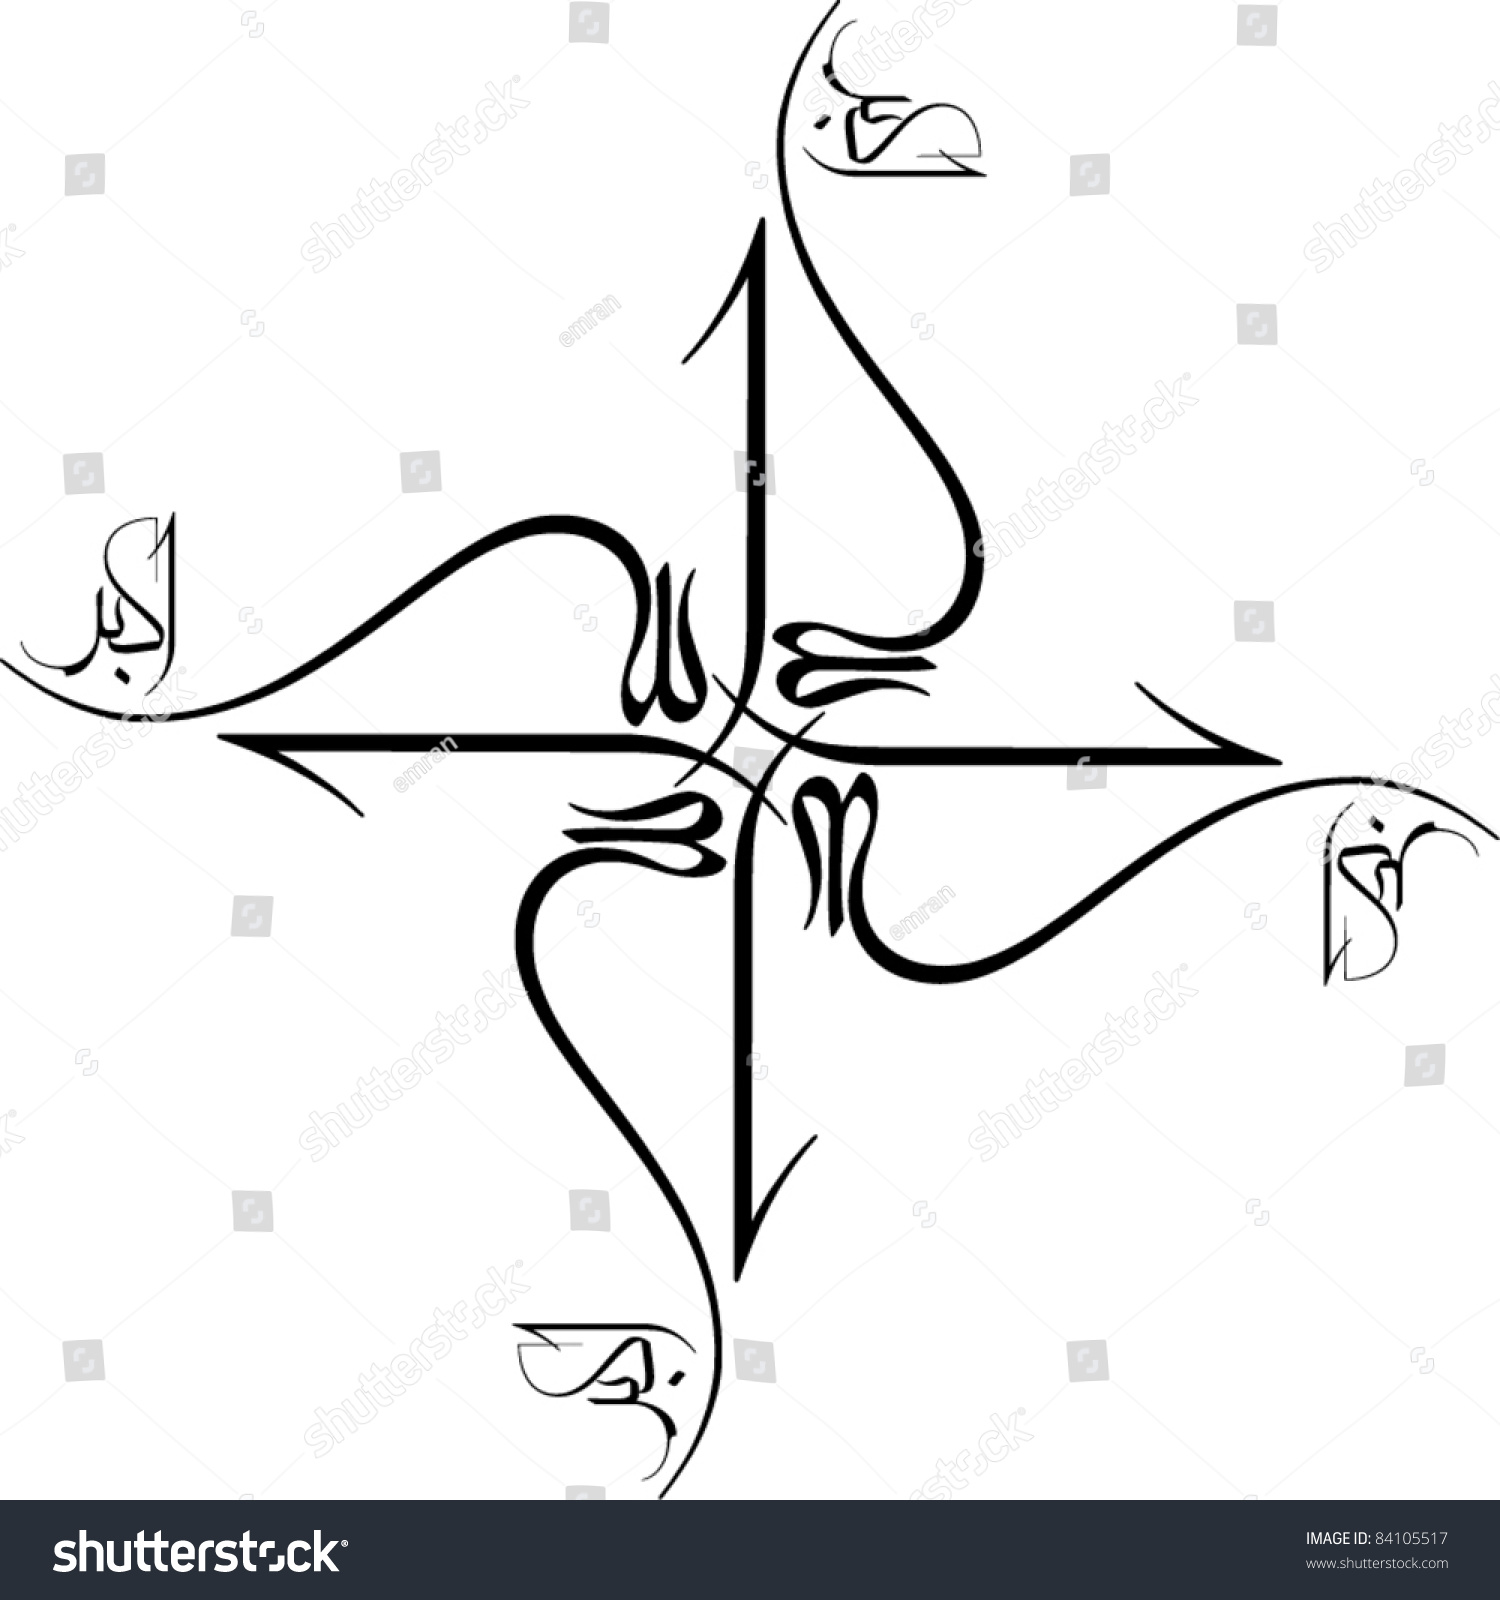 Takbir Word Allahu Akbar Arabic Calligraphy Stock Vector